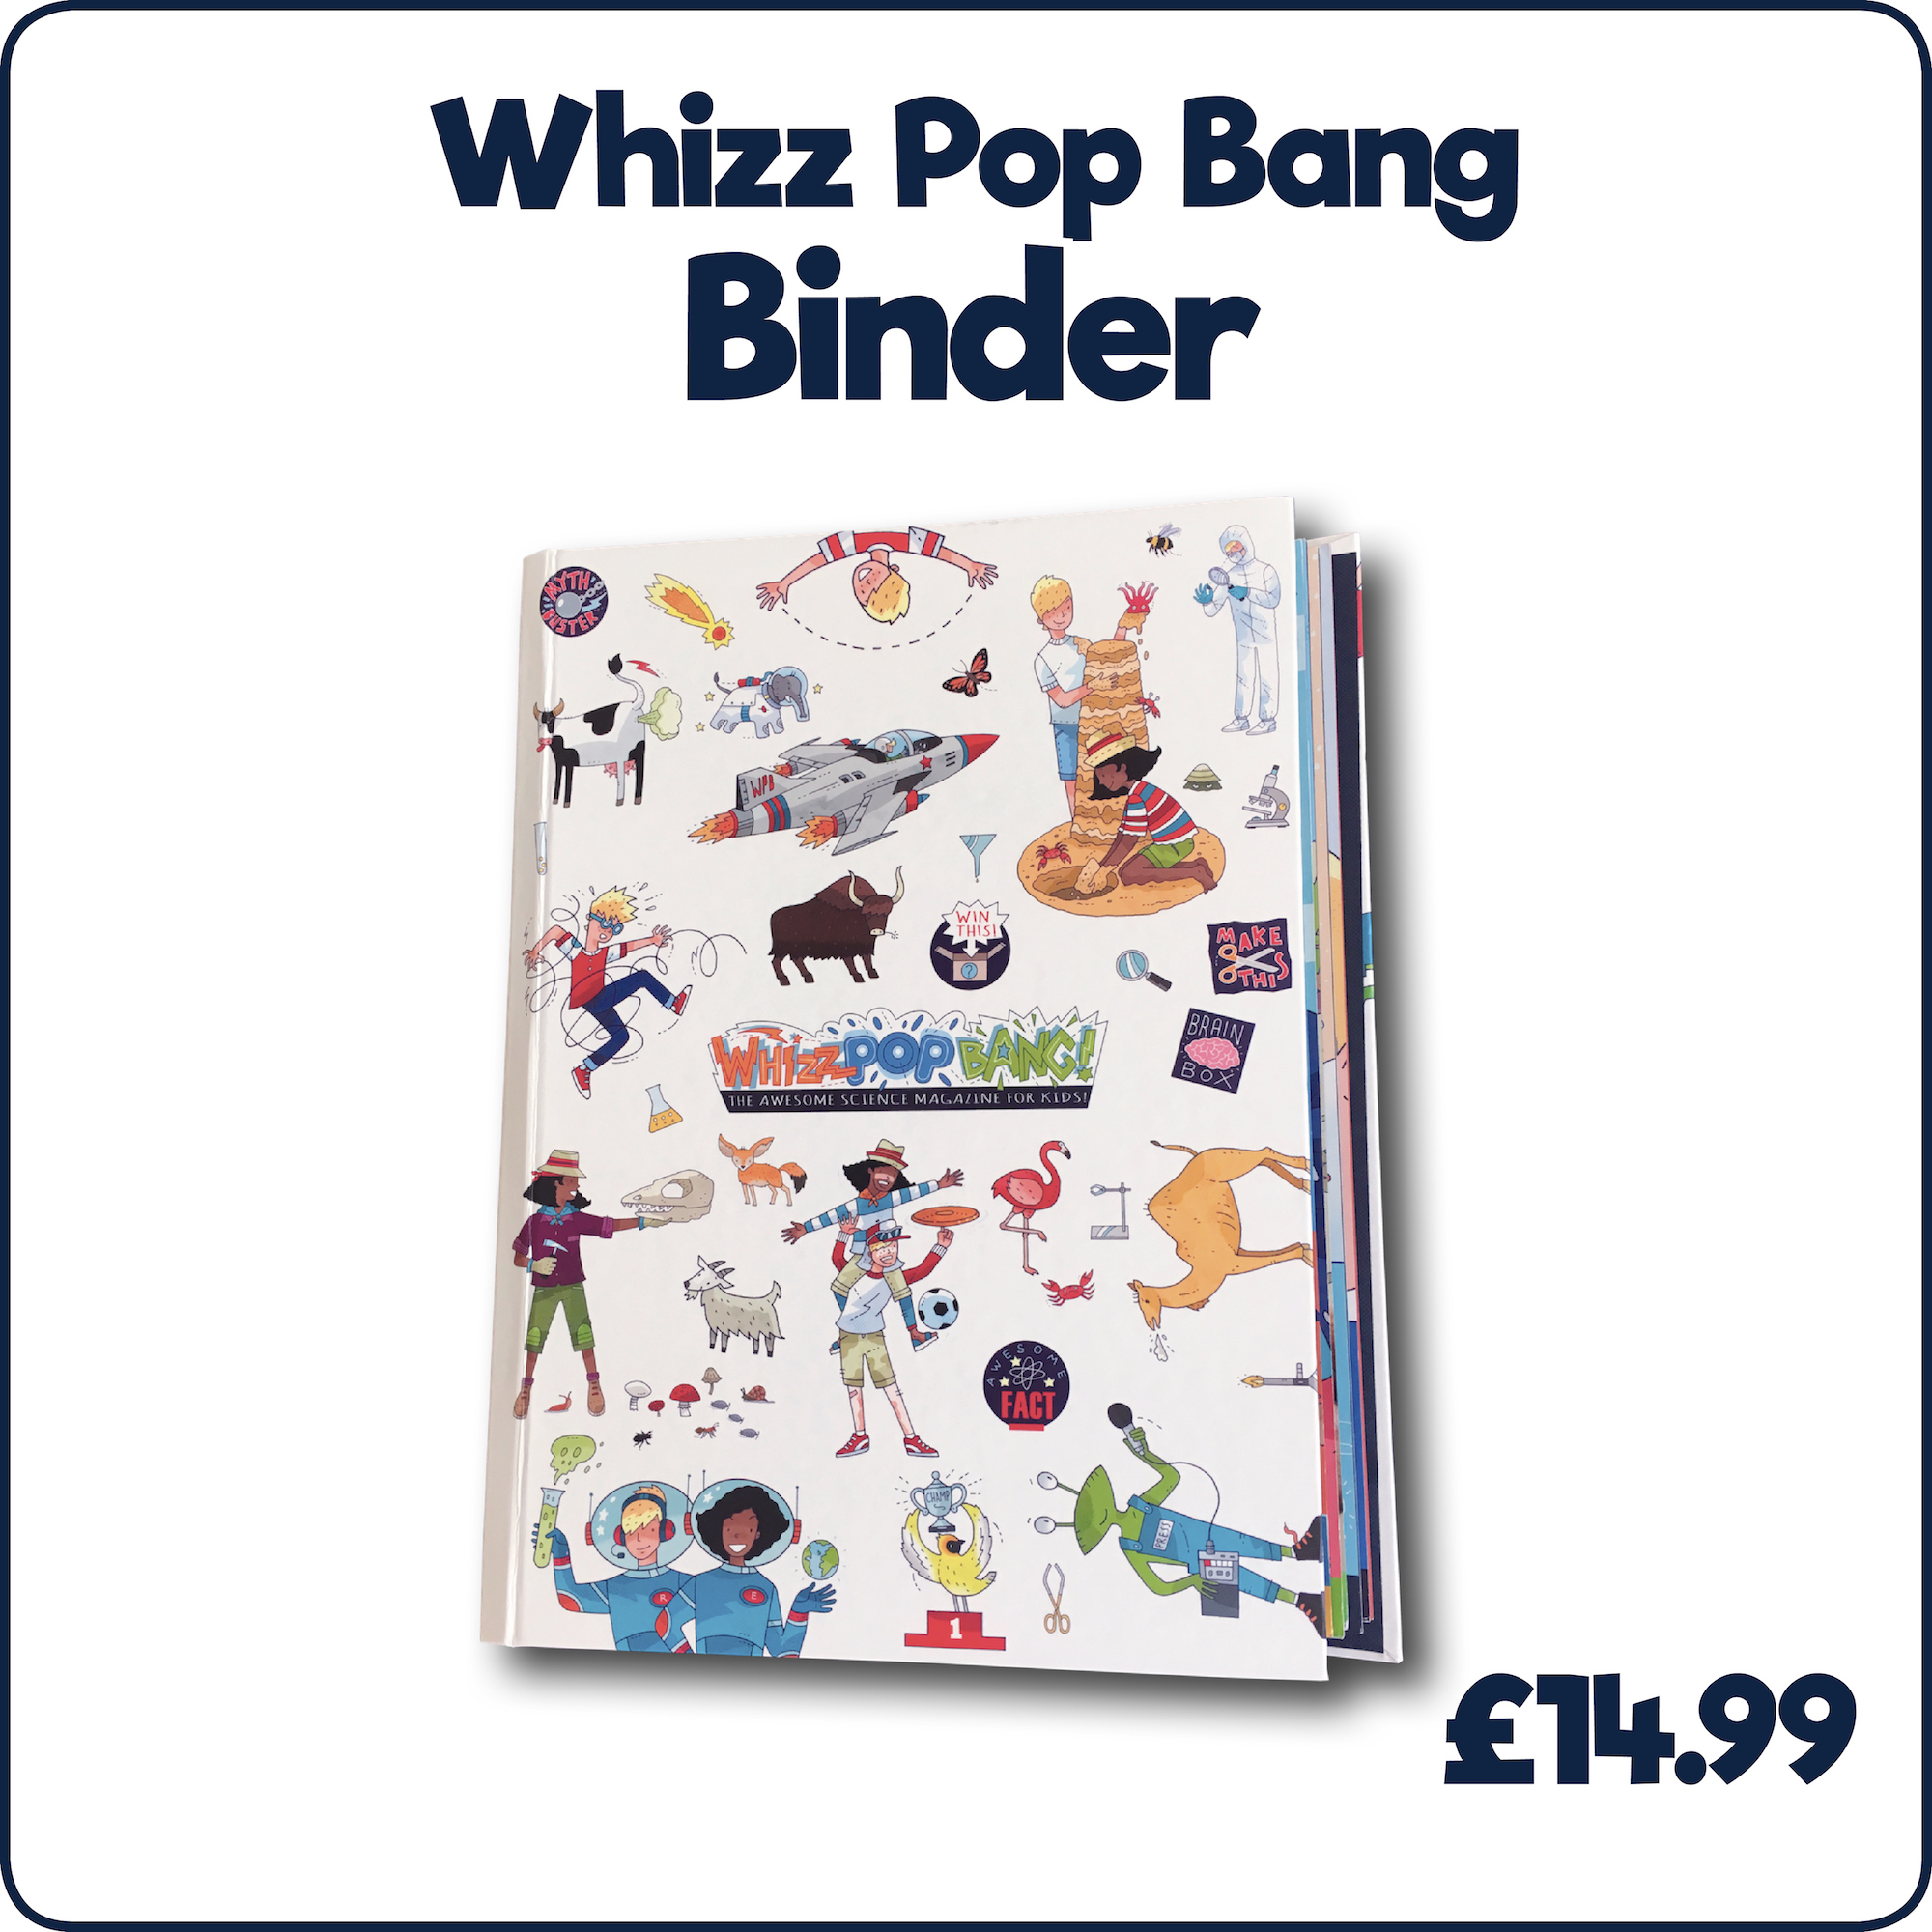 Whizz Pop Bang Binder